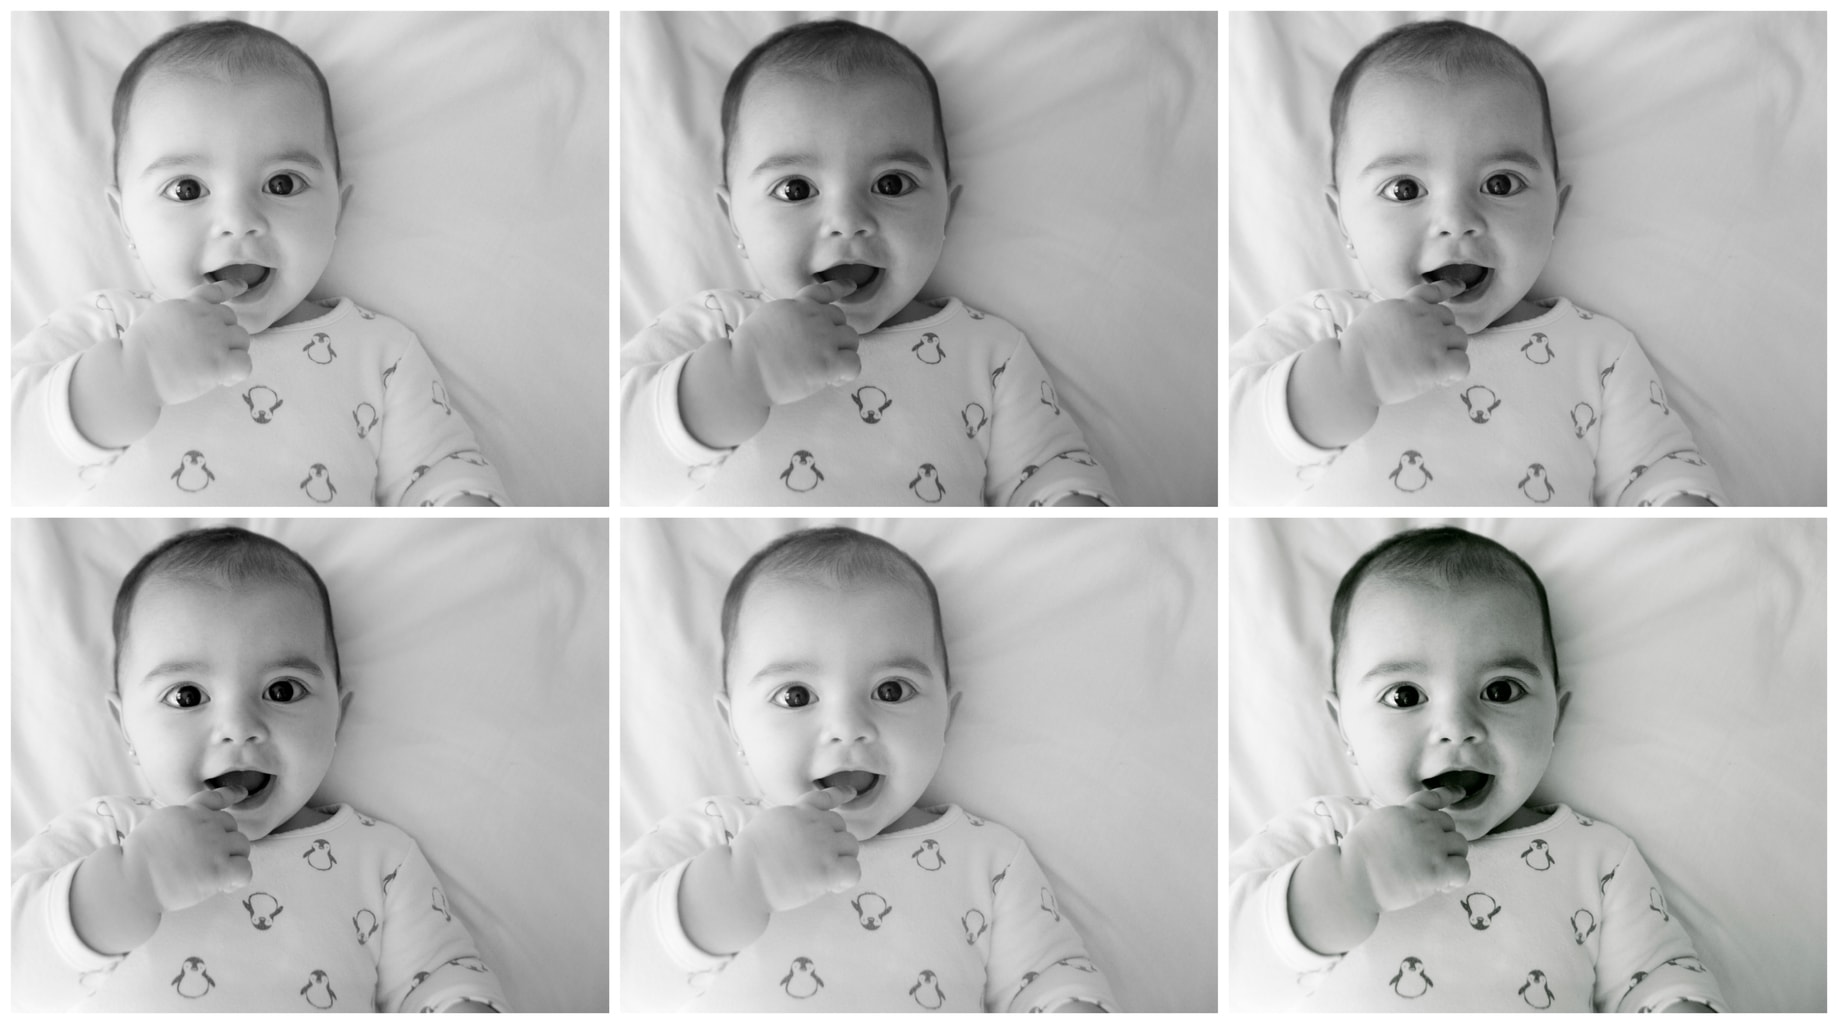 photoshop collage blanco y negro bebé alegre